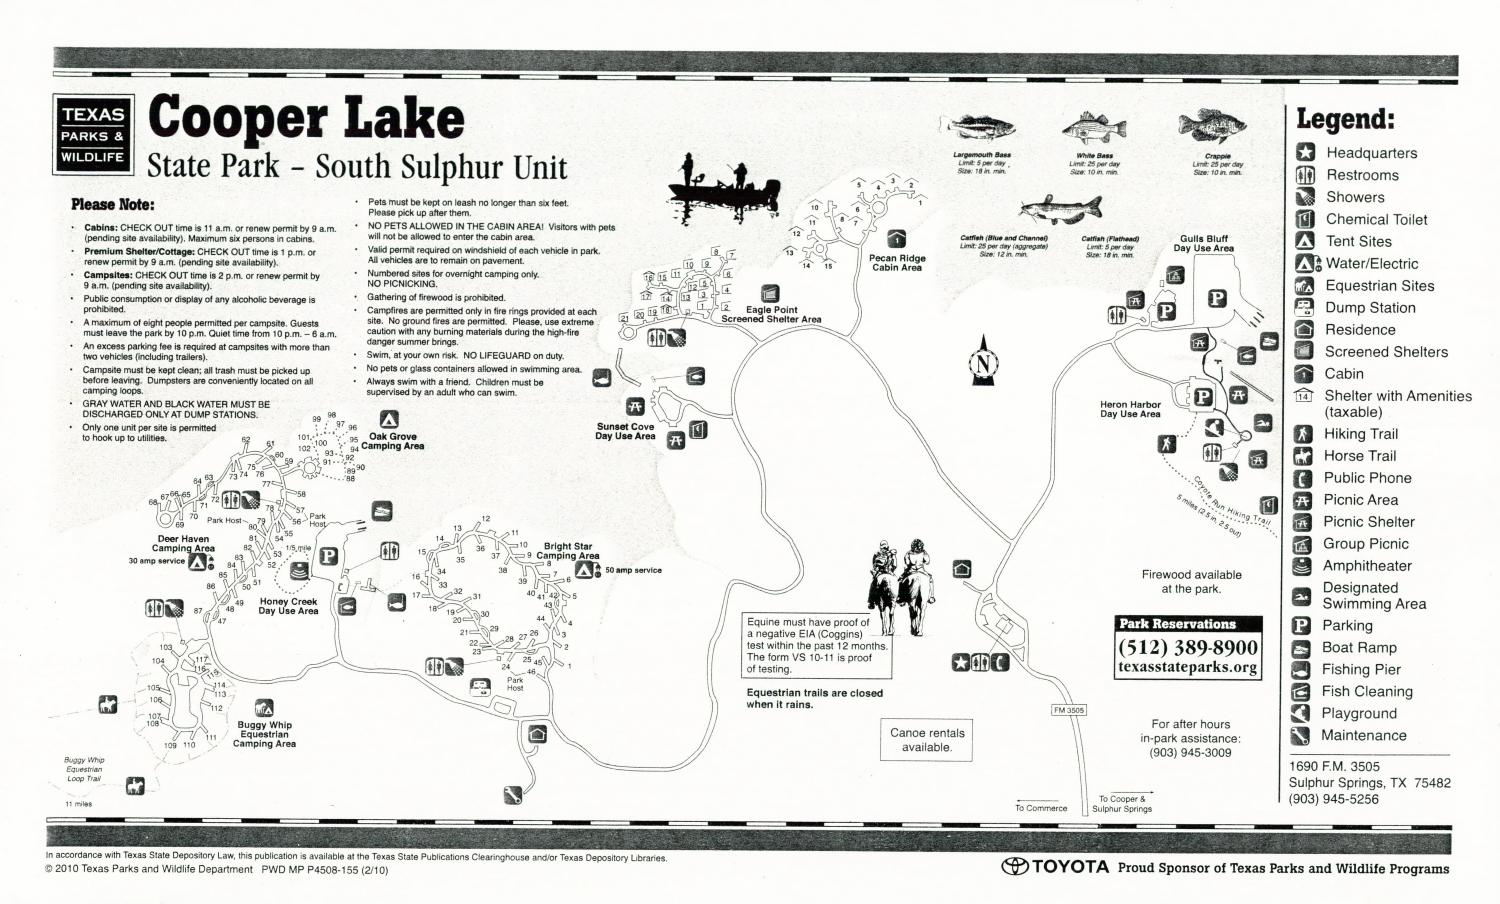 Cooper Lake State Park - South Sulphur Unit, Map of the South Sulphur Unit of the Cooper Lake State Park outlining hiking trails and highlighting activities, facilities, and other features such as bathrooms, lodgings, water/electric, etc. It also contains general information for the park and for the Texas Parks and Wildlife Department.,